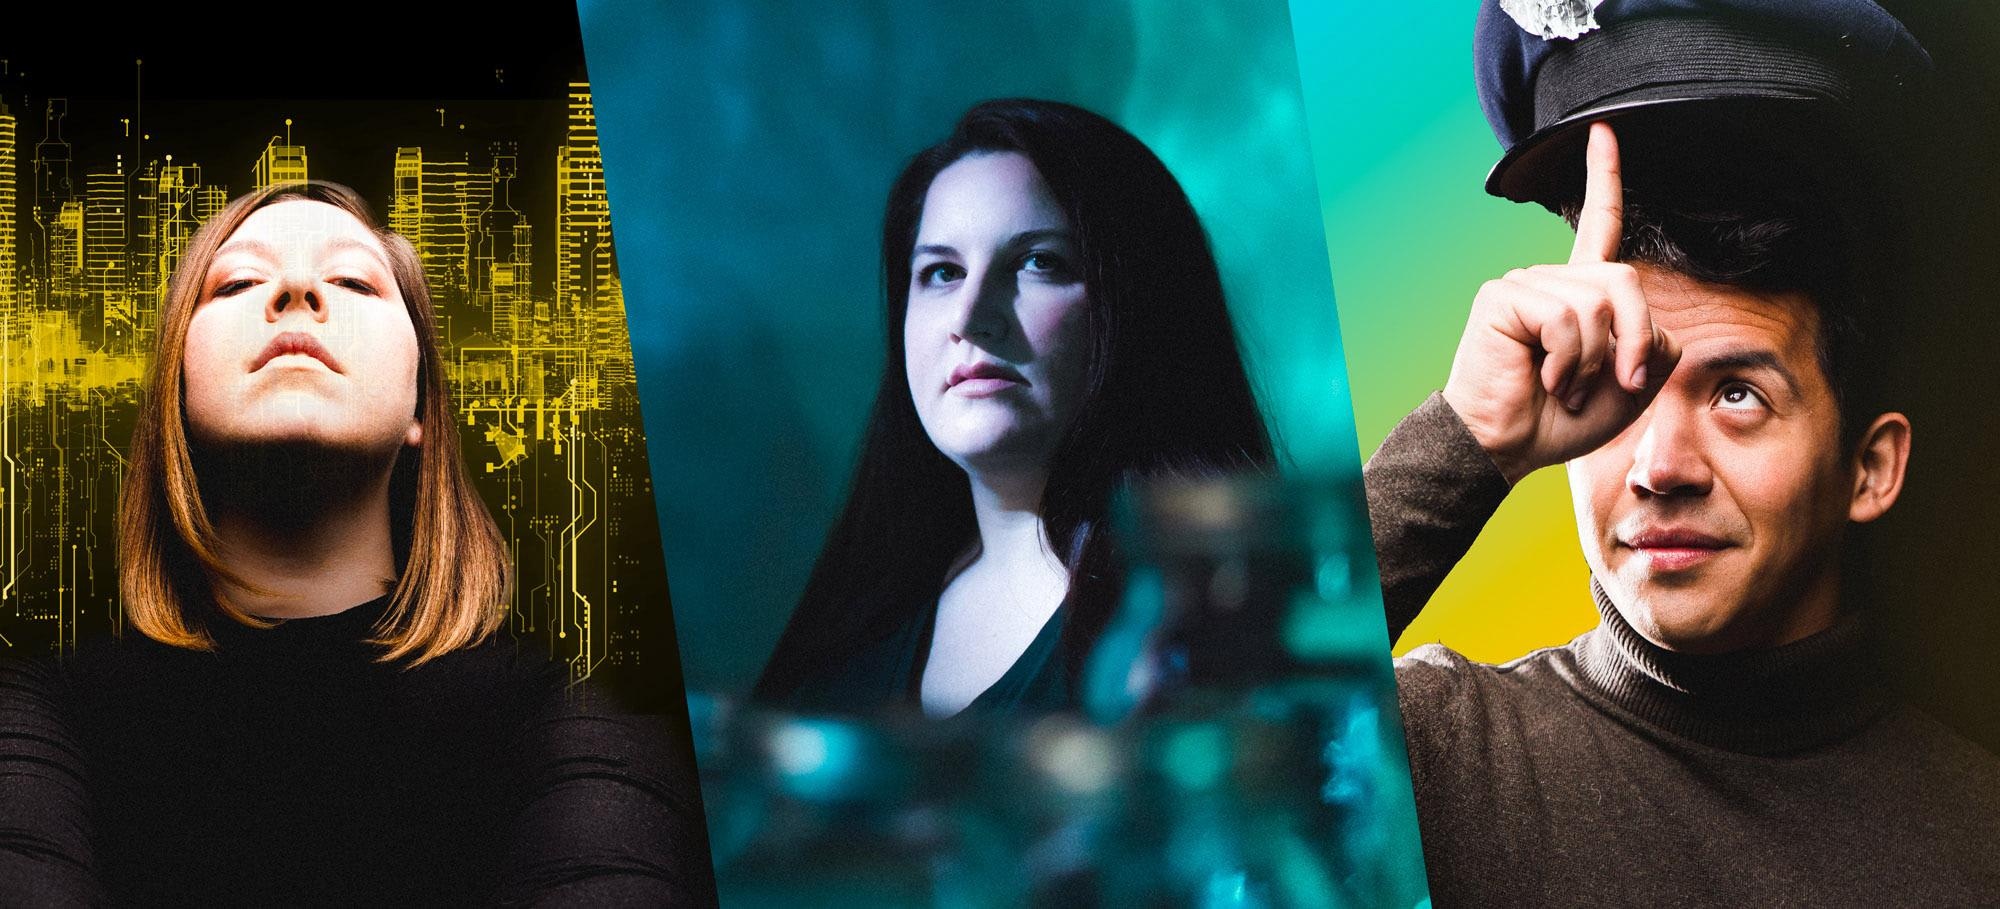 Promotional images for Chicago Opera Theater's 2020-2021 season. (Credit: Joe Mazza)